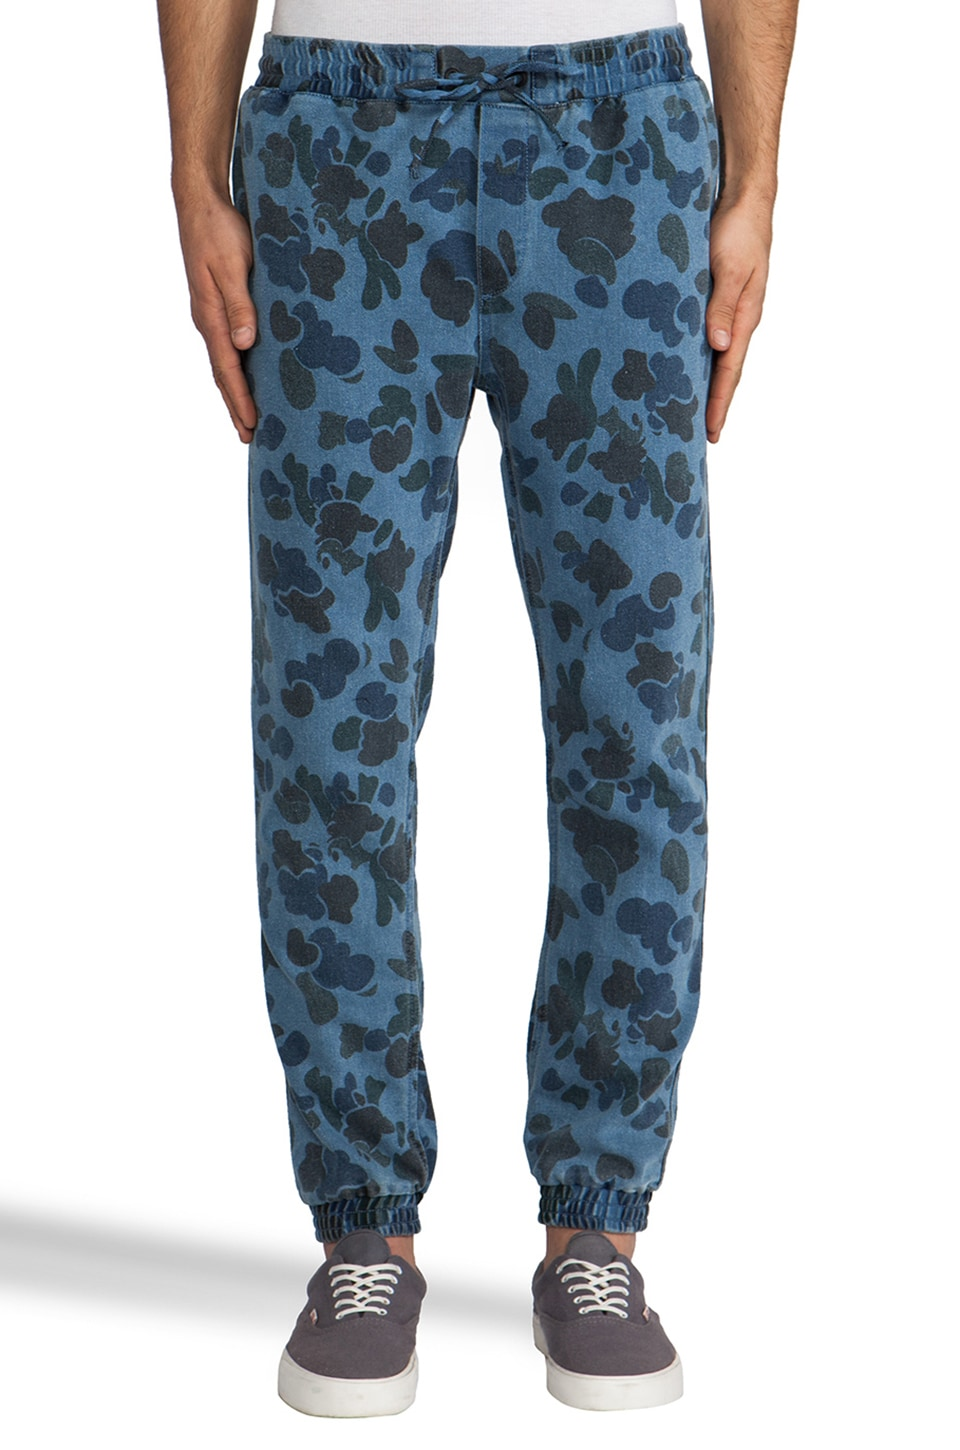 Insight Pump Pant in Camo Blue